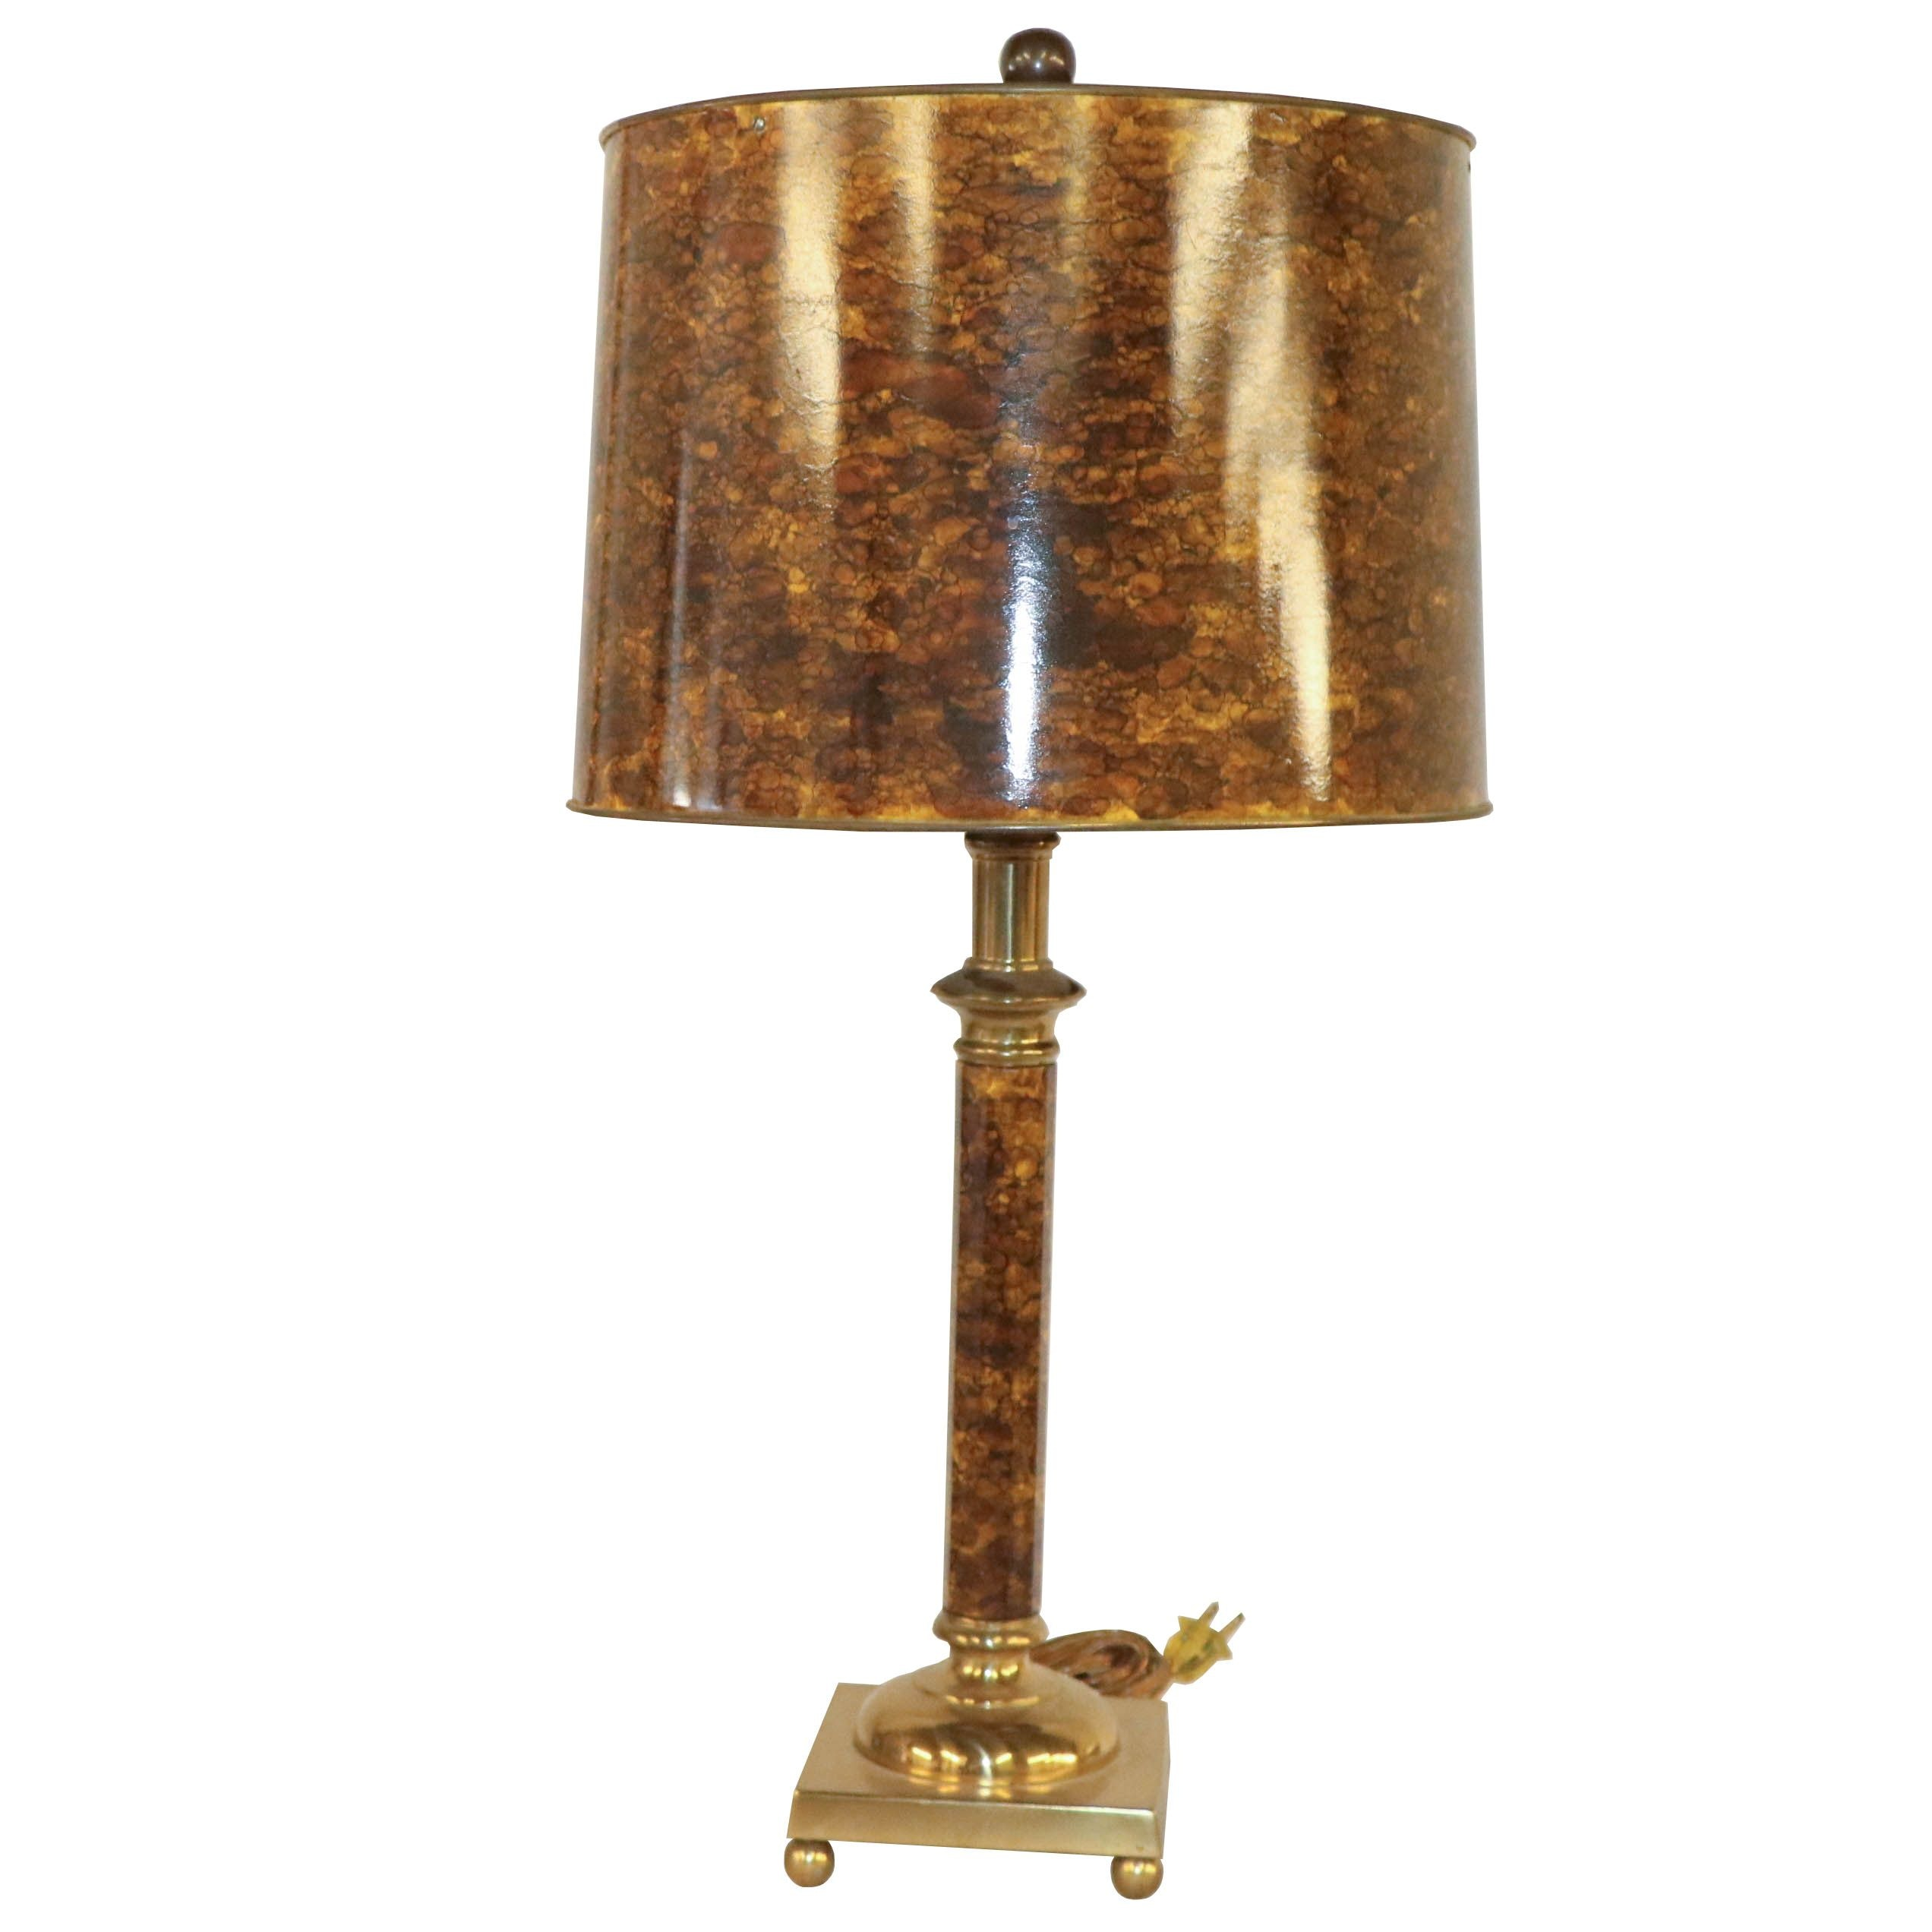 Mottled Finish Metal Candlestick Table Lamp with Matching Shade